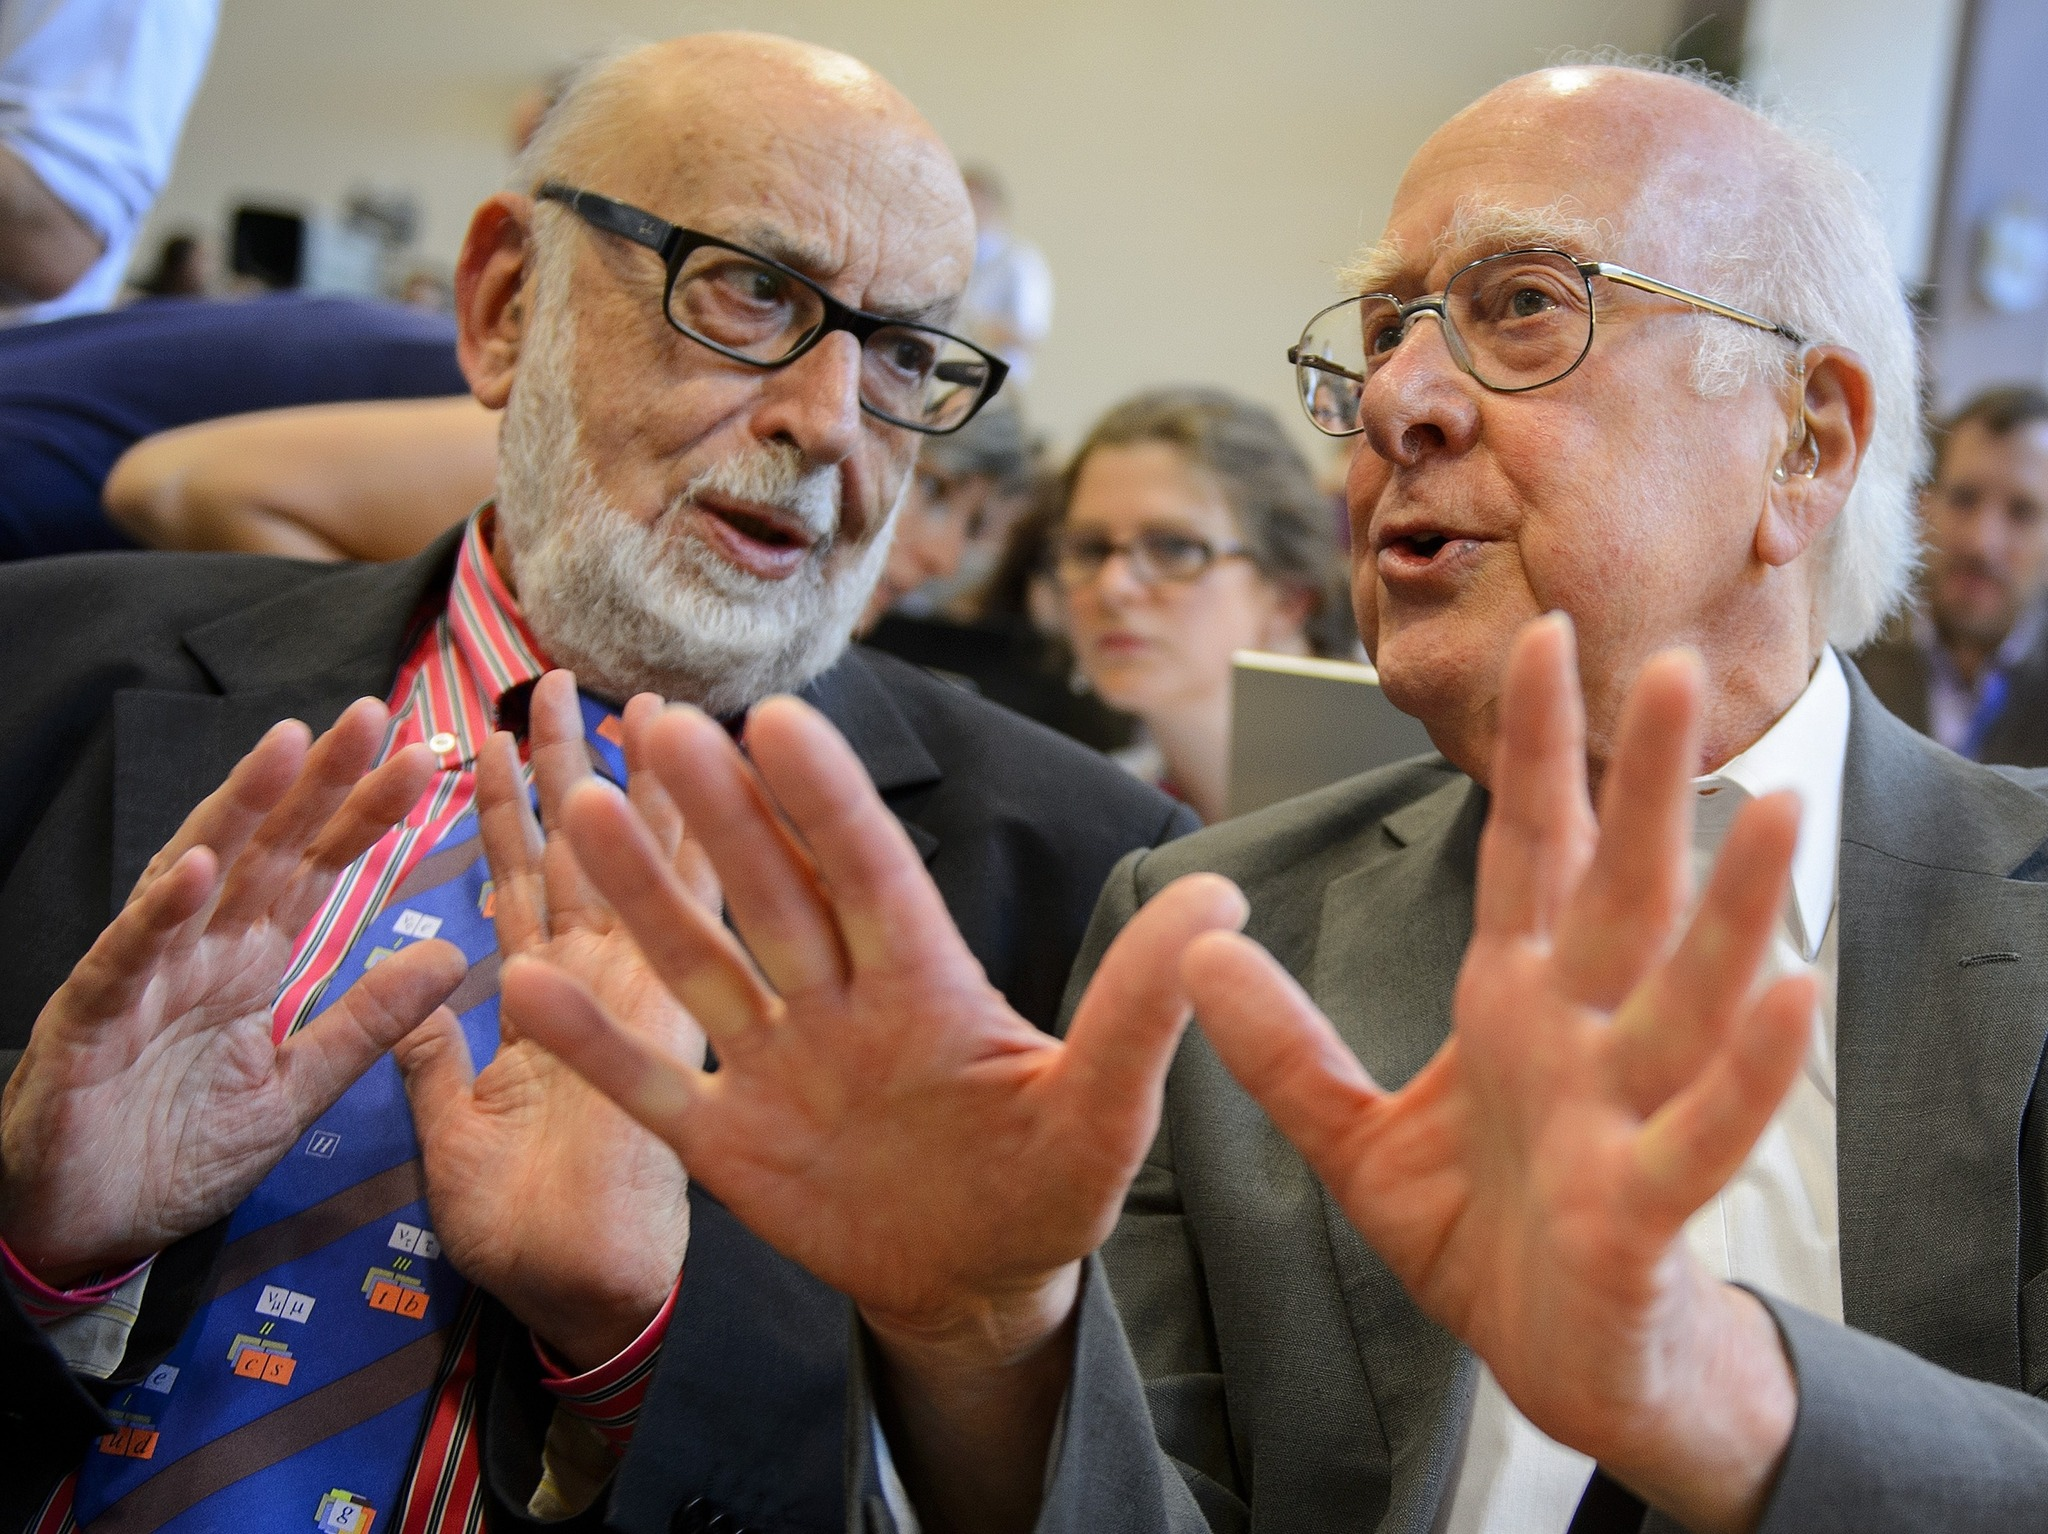 Francois Englert (left) and Peter Higgs discuss their discovery during a press conference at CERN offices. AFP/Getty Images